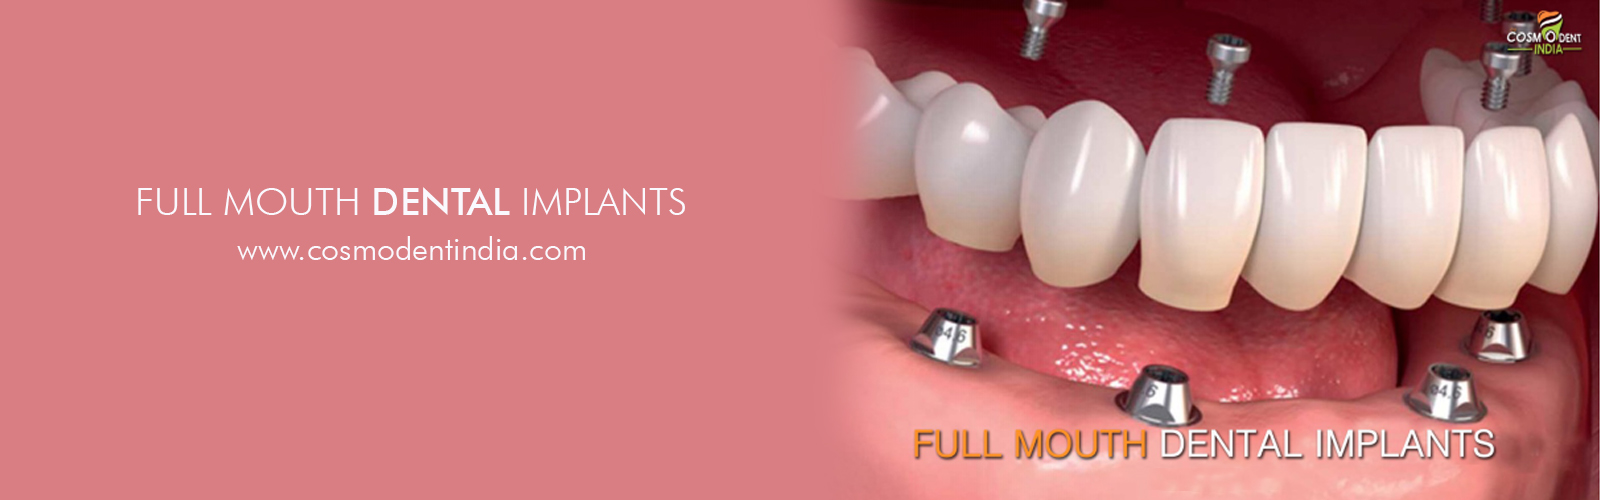 implantes dentales-costo-en-Bangalore